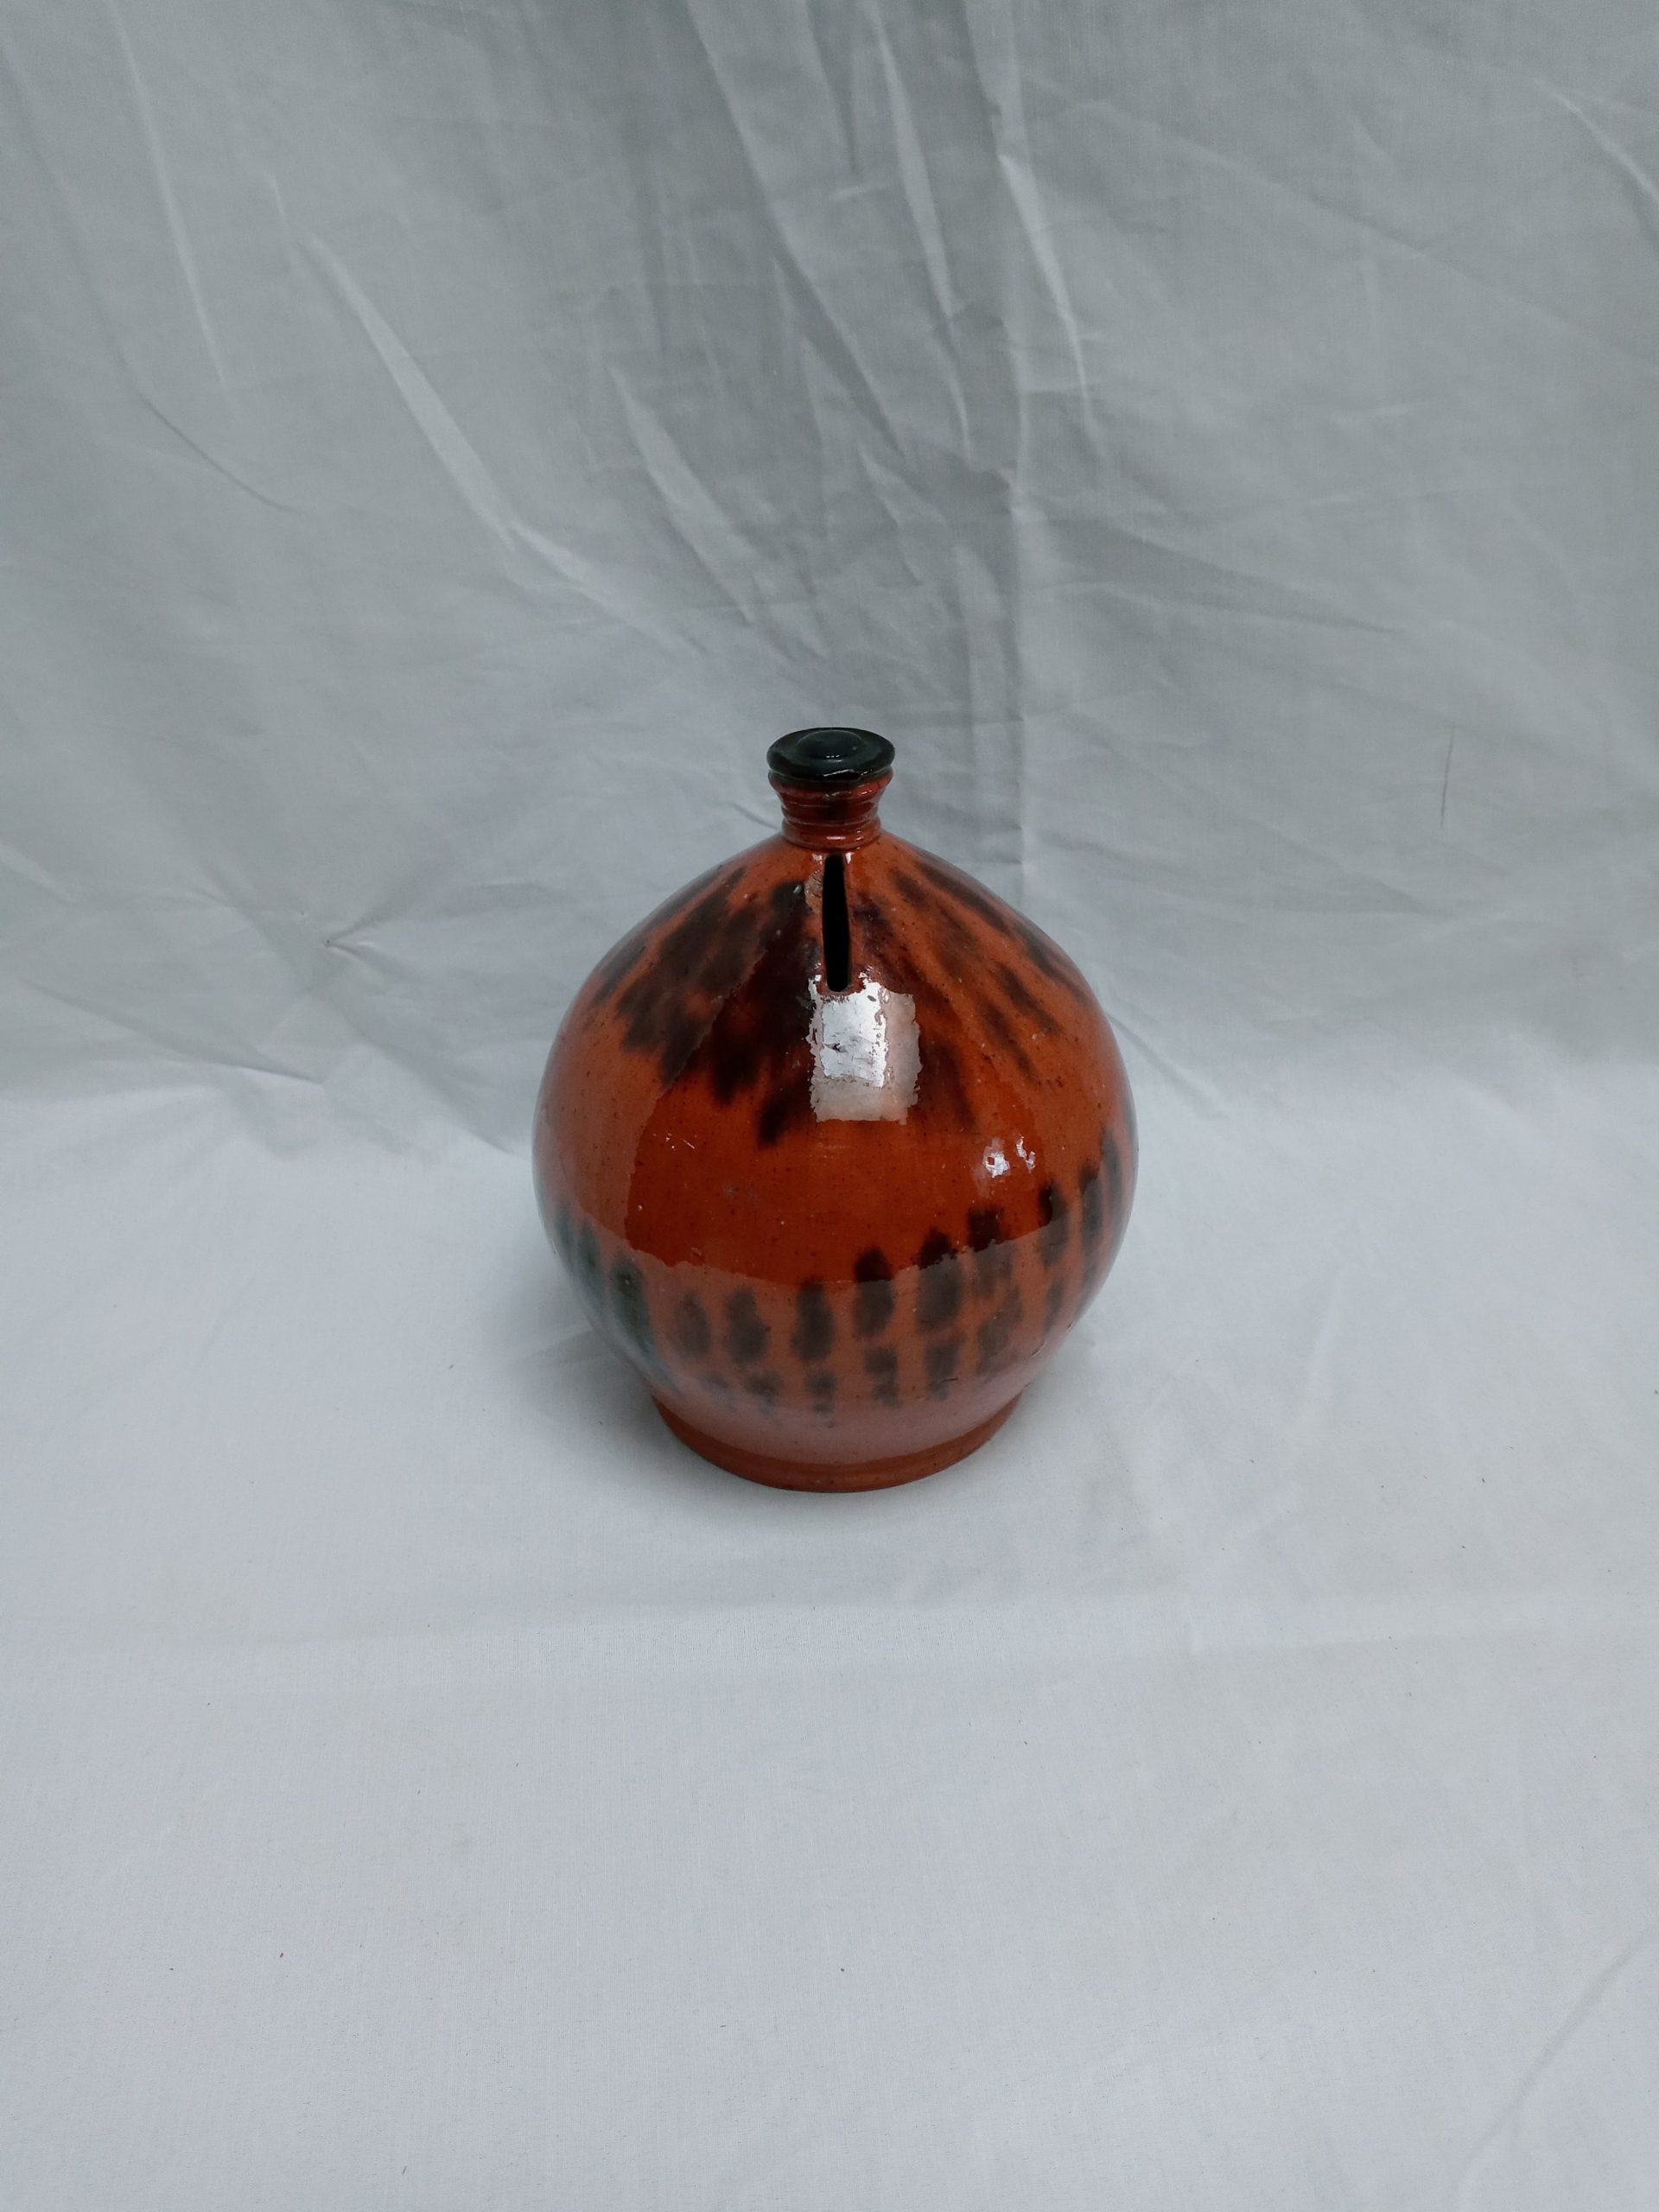 19-34023 Pennsylvania Redware Pottery Ovoid Penny bank, graphic black managanese decoration. Image